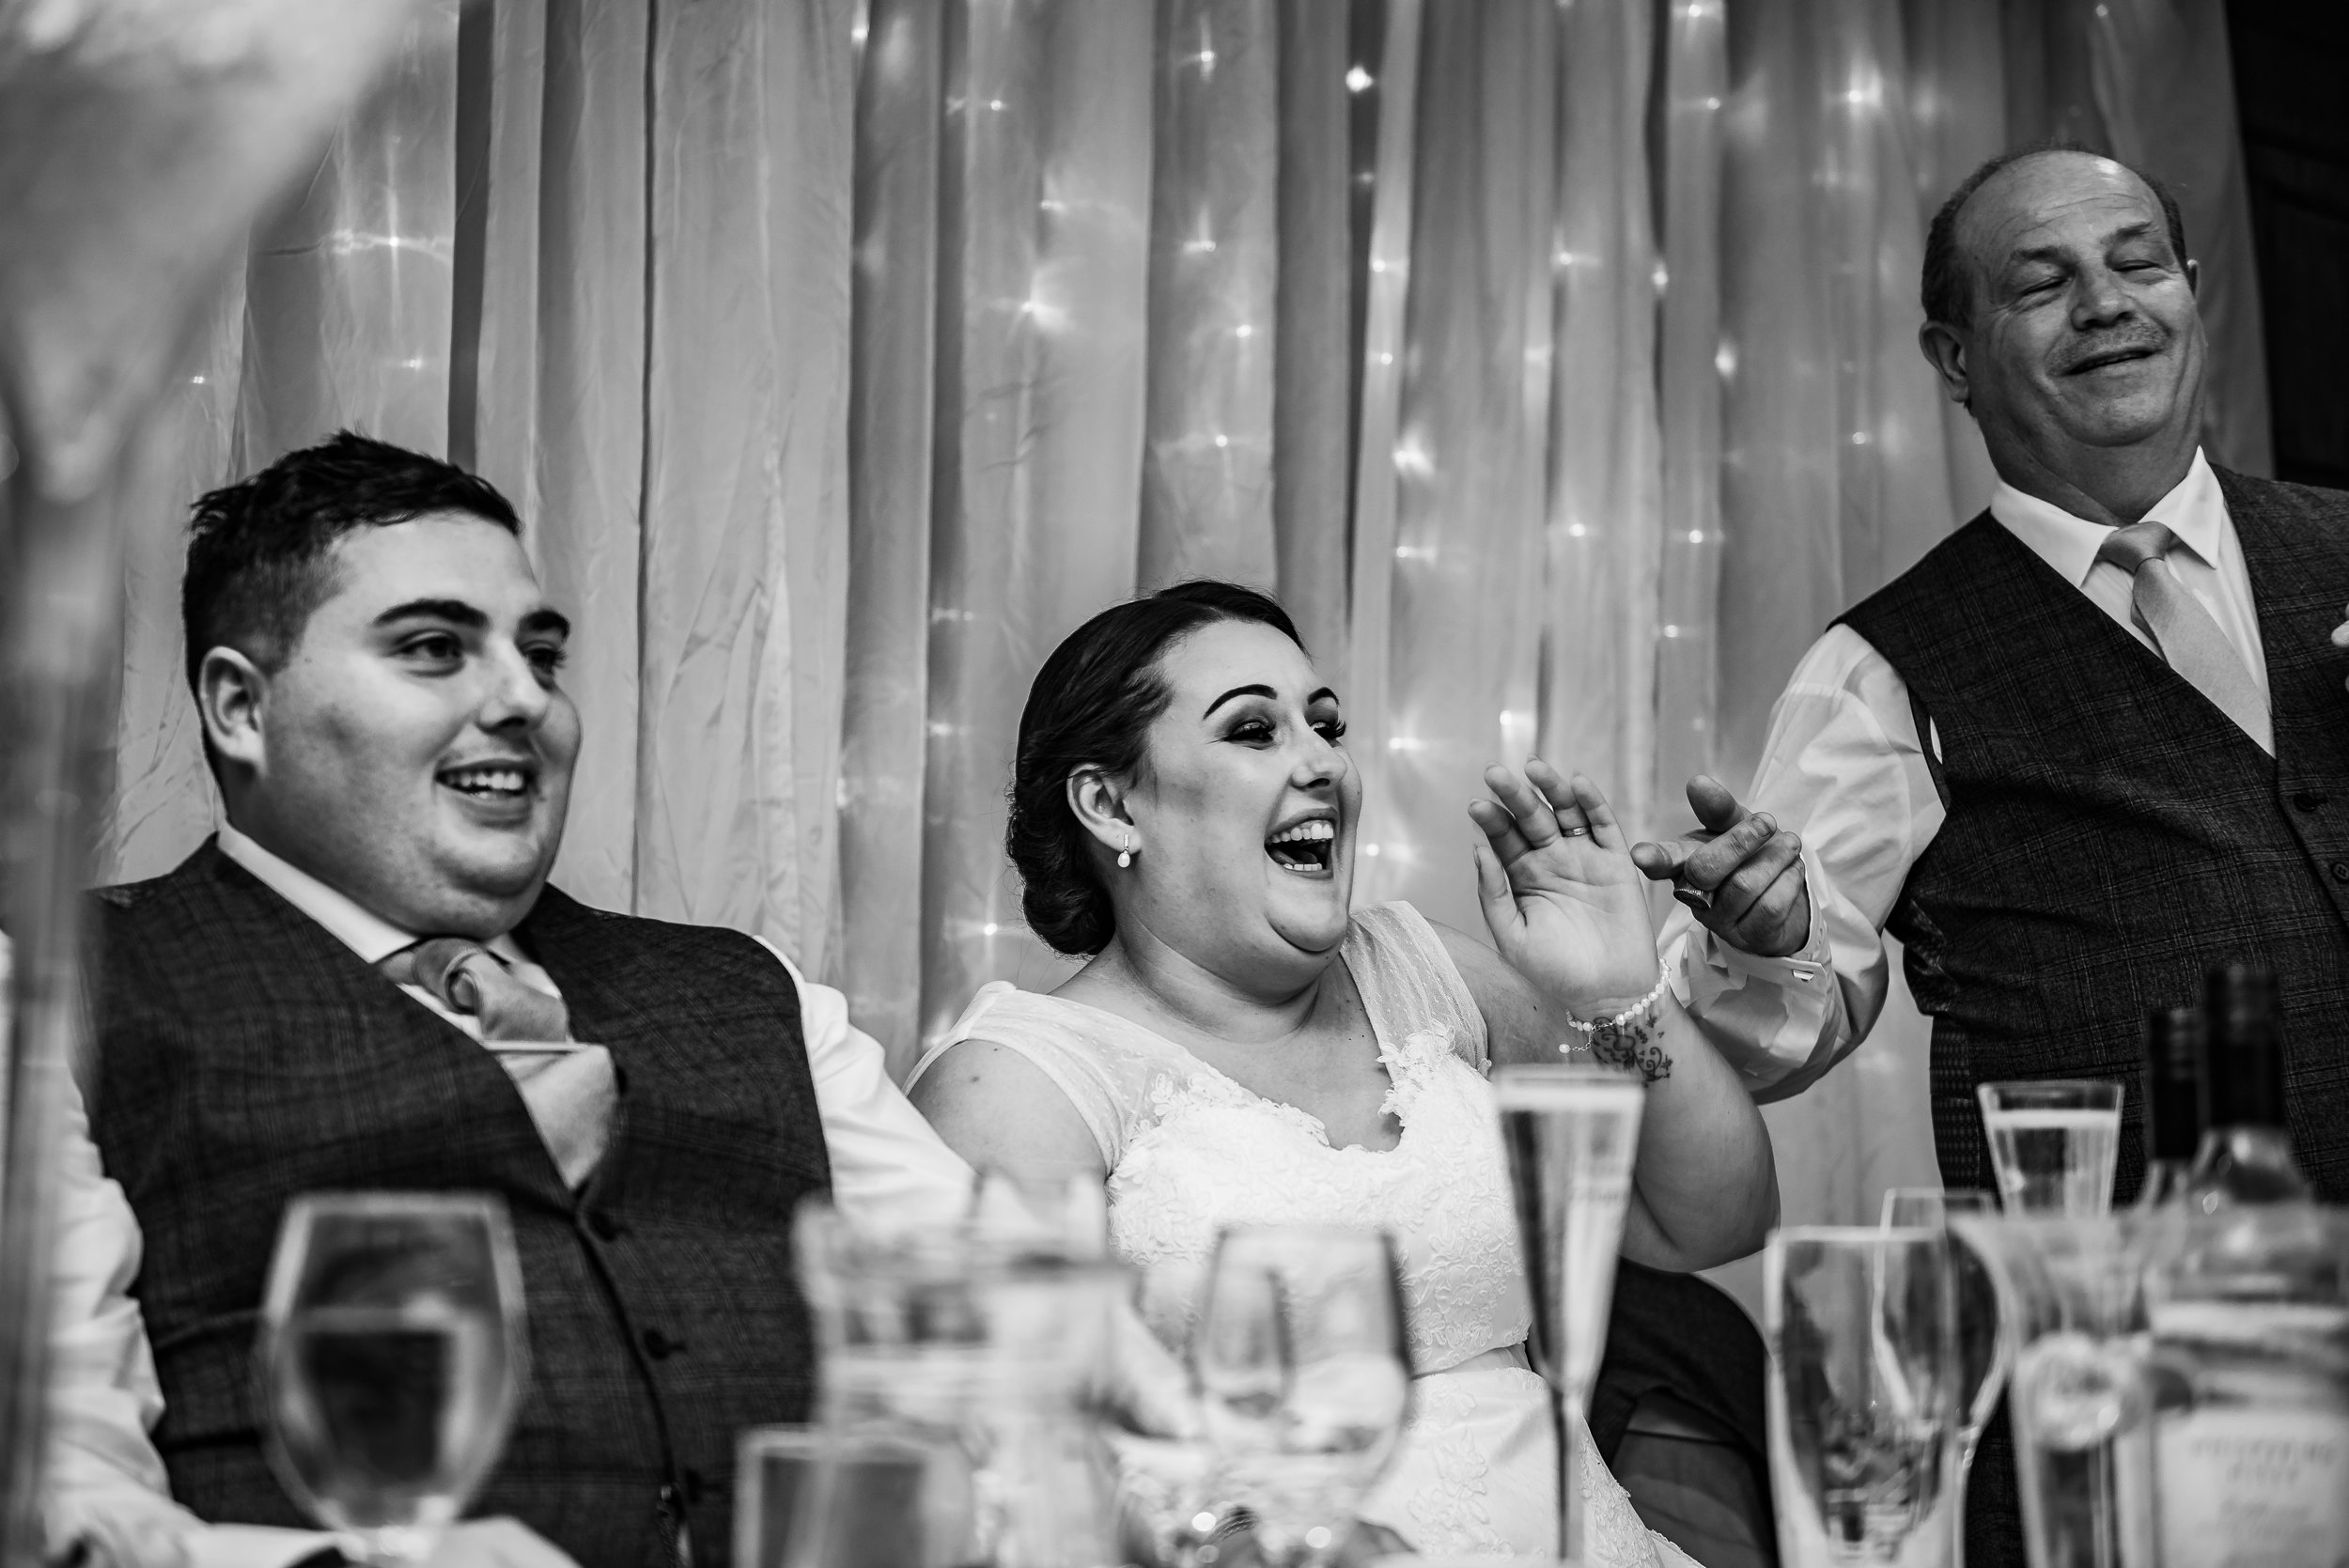 castle Bromwich hall hotel wedding photography natural black and white photography speeches father embarrassing daughter